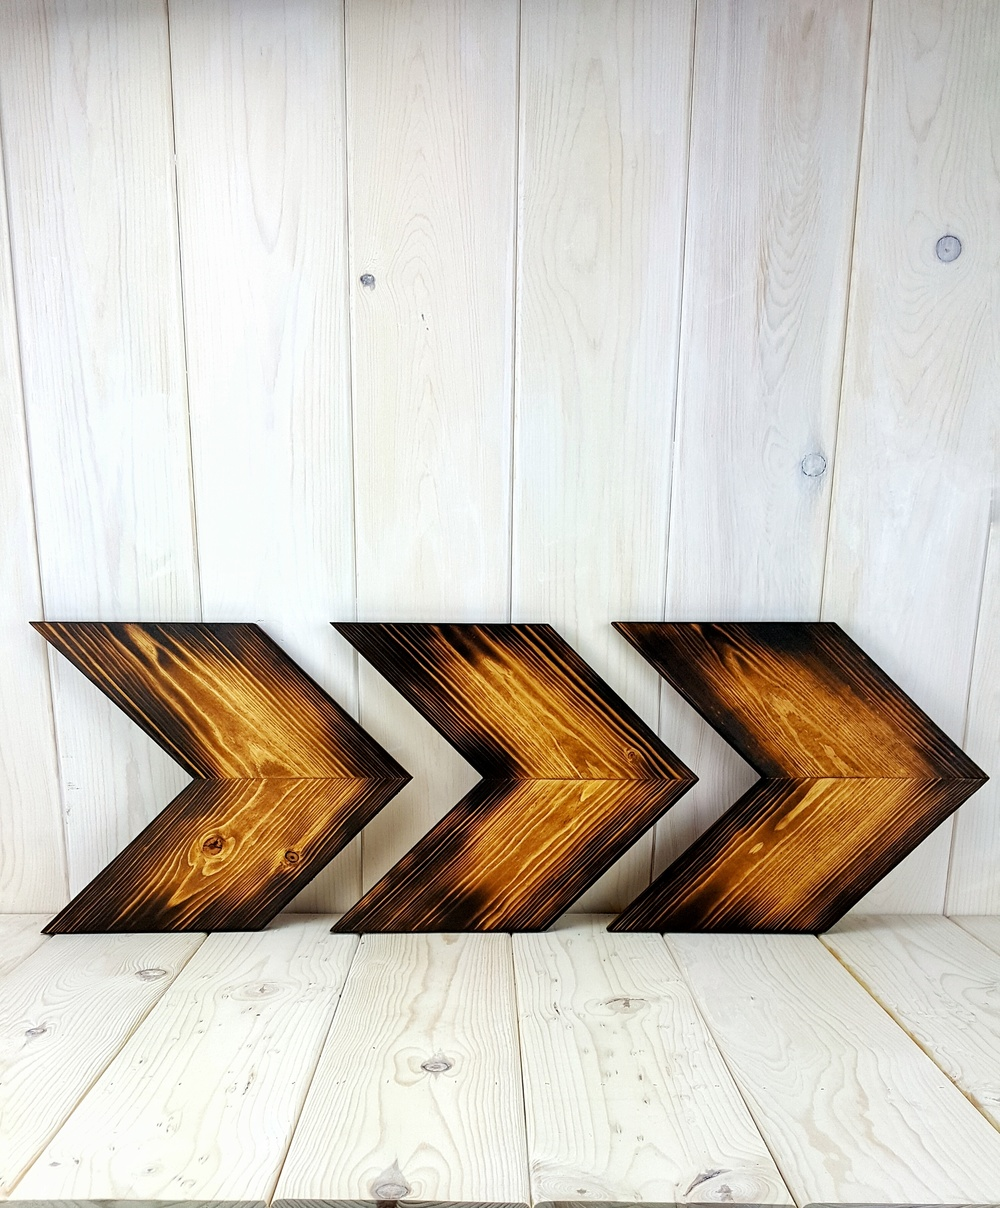 Woodburned Wheat Arrows